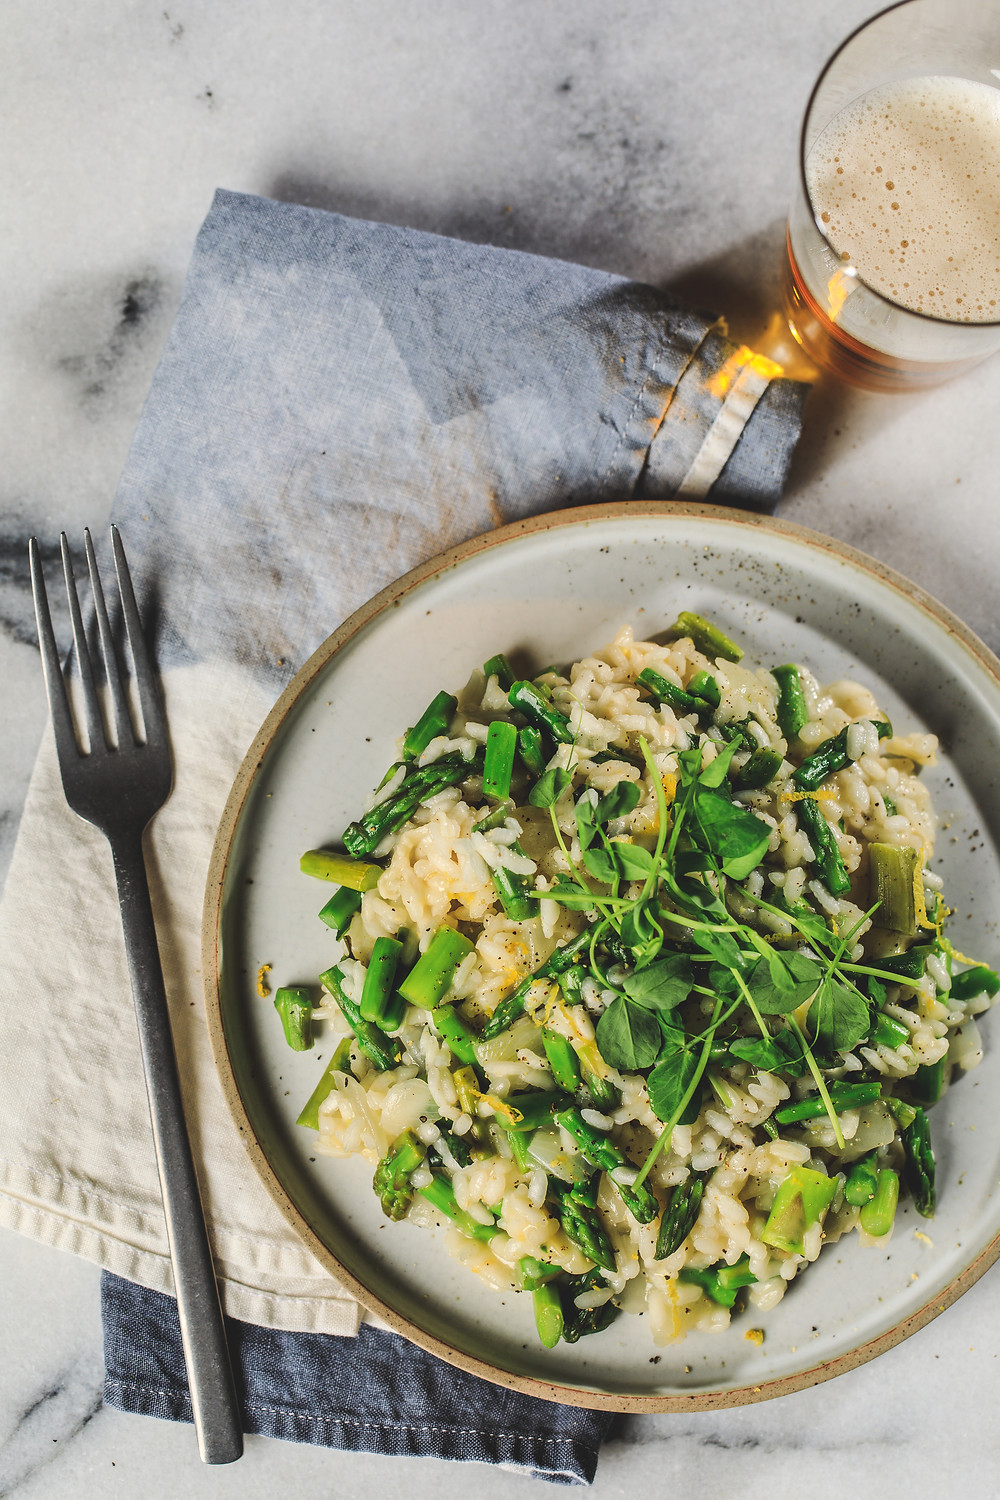 Lemon Asparagus Risotto with a Goose Island craft beer